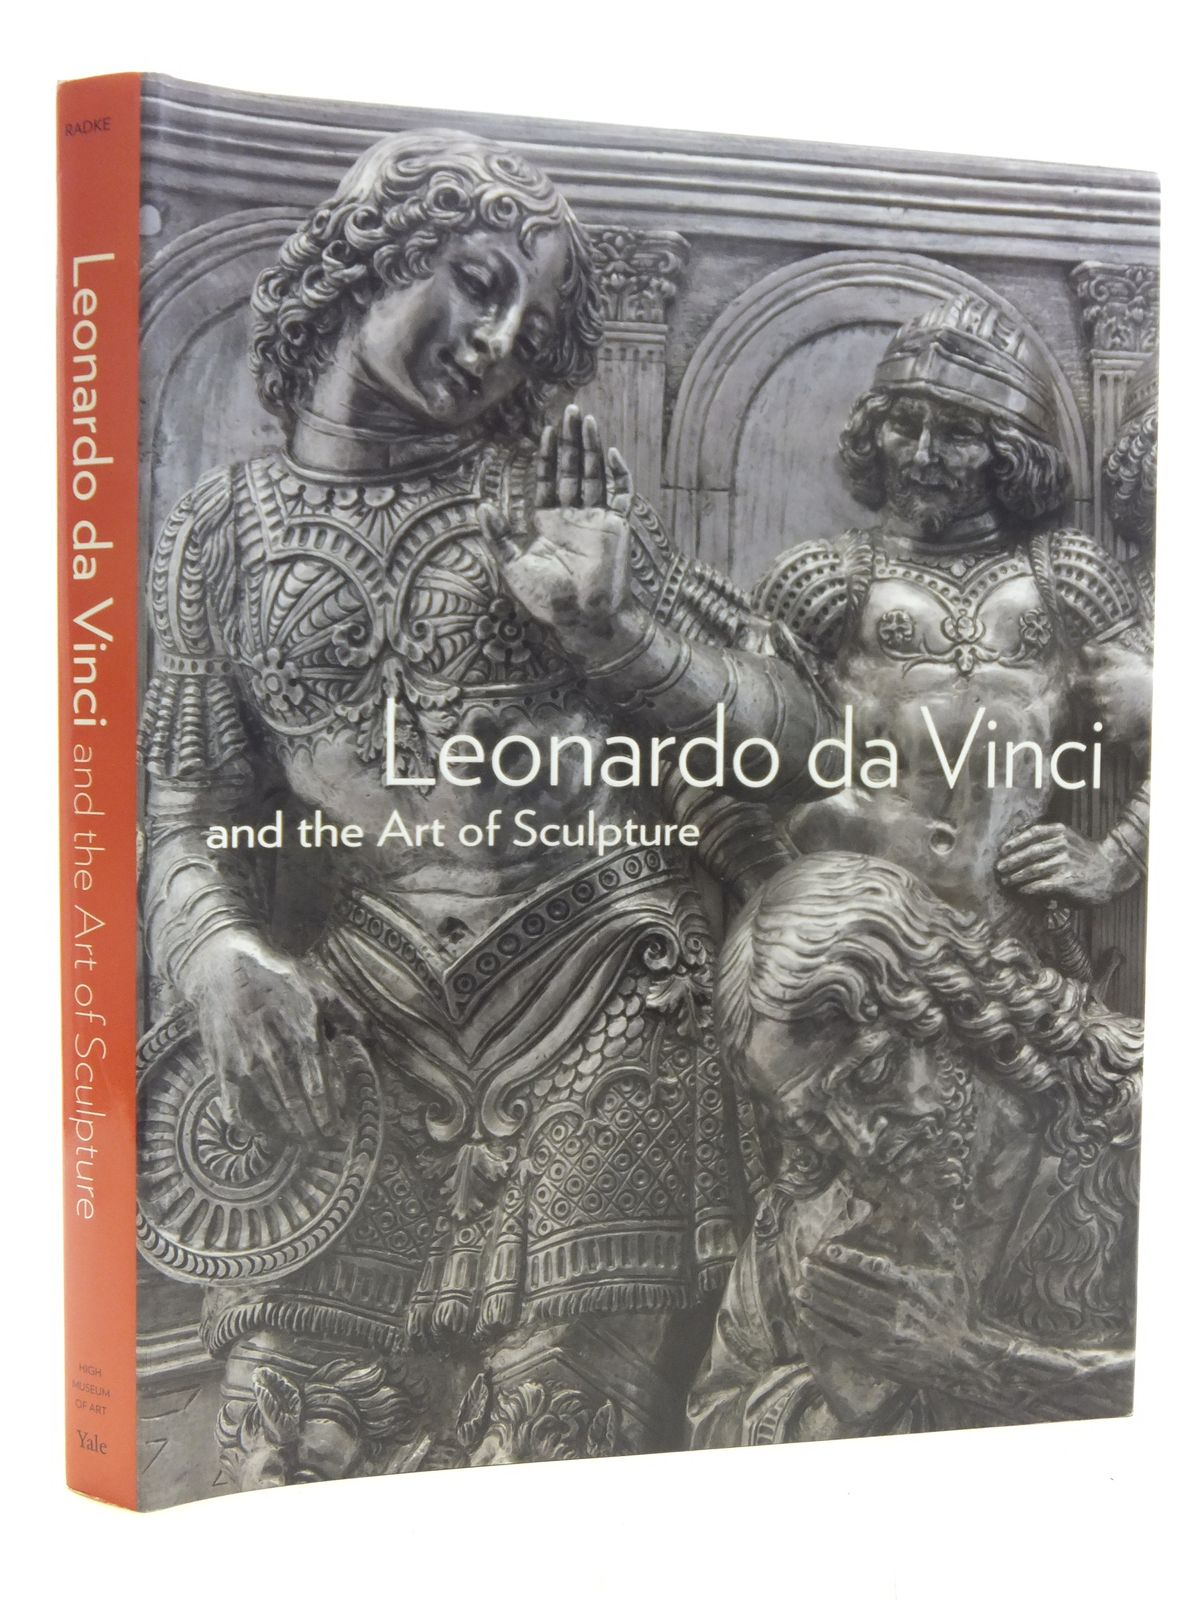 Photo of LEONARDO DA VINCI AND THE ART OF SCULPTURE written by Radke, Gary M. et al, published by High Museum Of Art, Atlanta, Yale University Press (STOCK CODE: 1607288)  for sale by Stella & Rose's Books